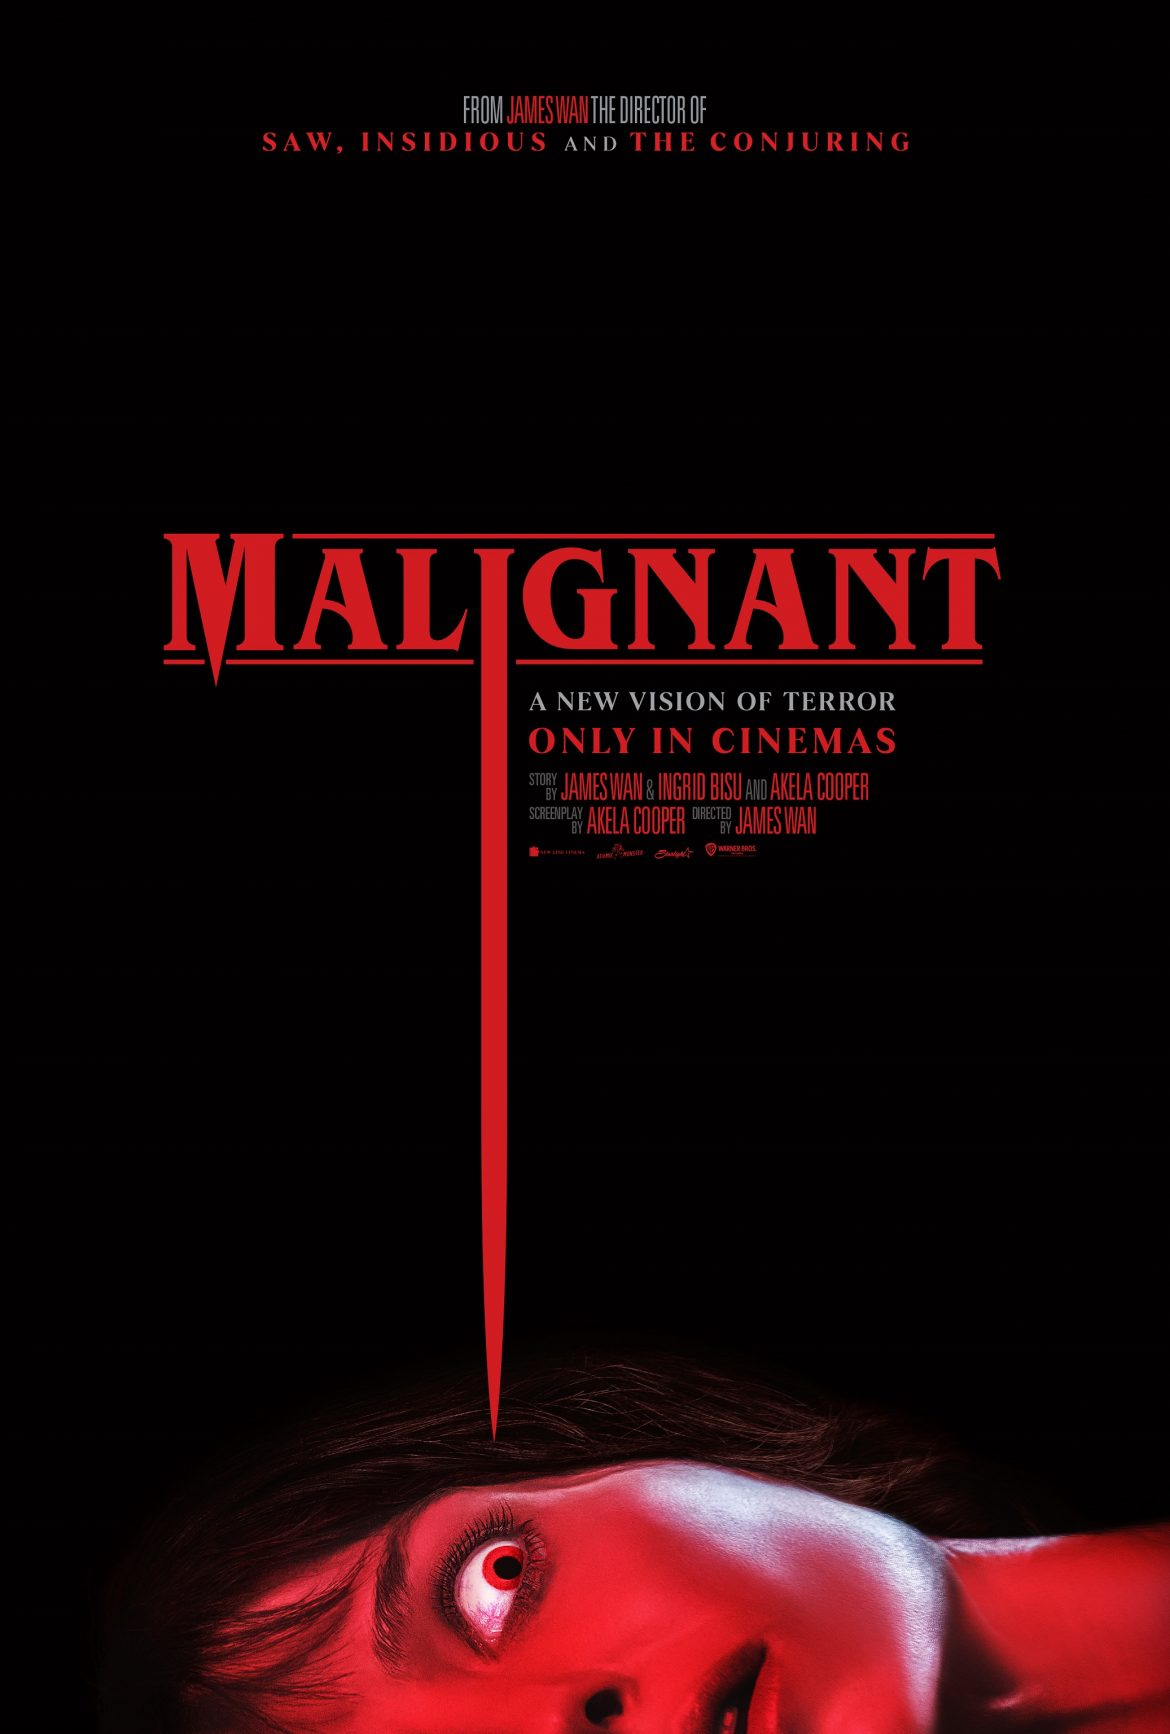 'Malignant' is James Wan's latest foray back into the Horror genre releases it's new trailer